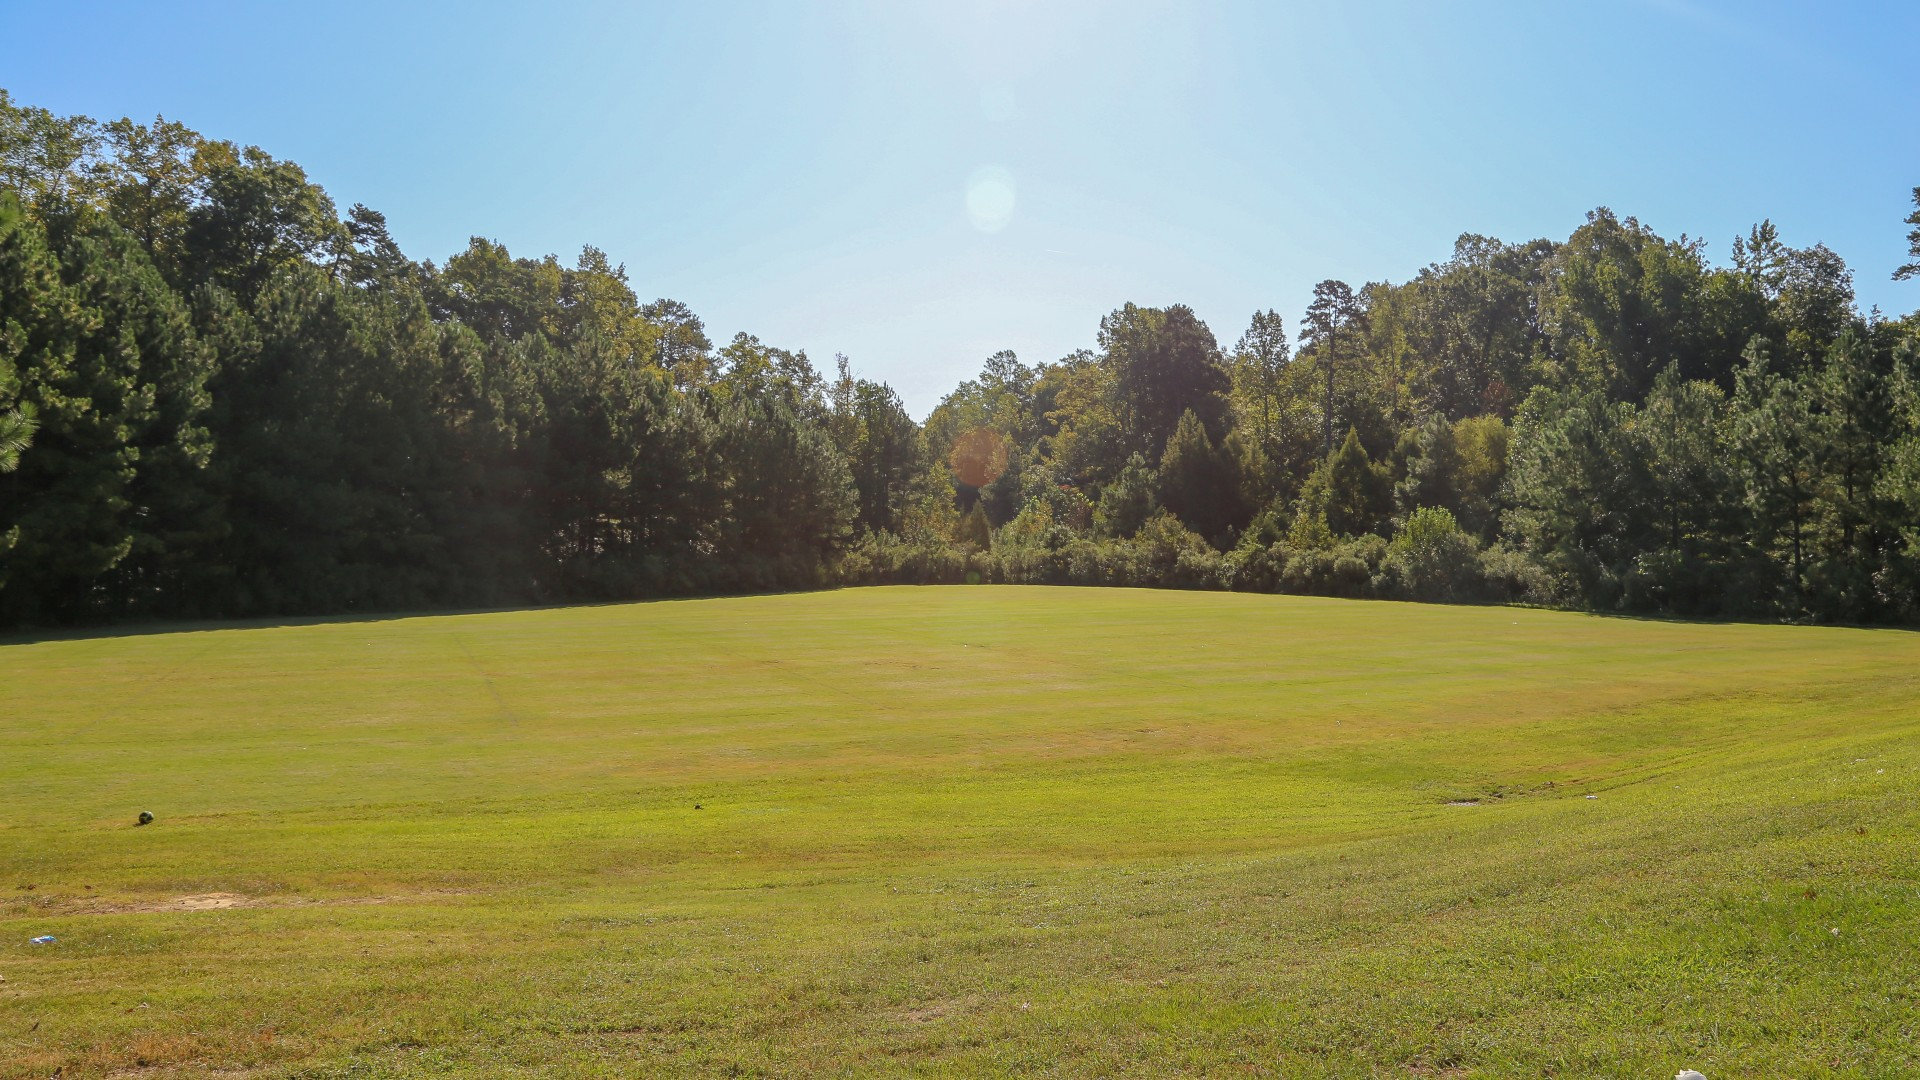 A large, open multi-purpose field at Marsh Creek